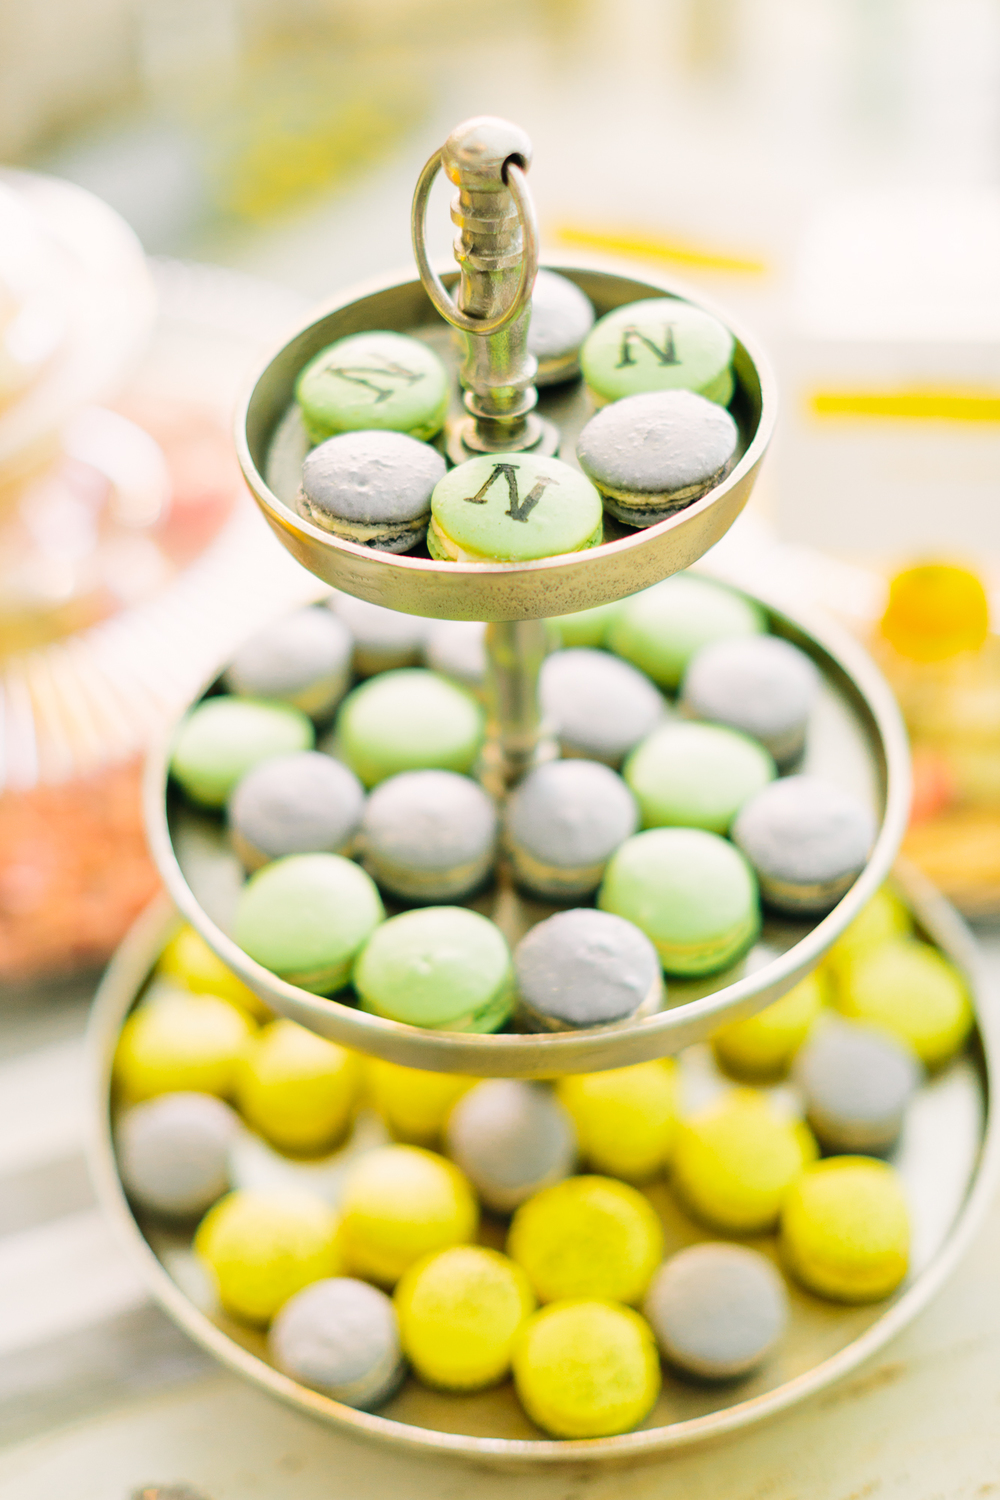 miam-miam-french-macarons-bash-studio.jpg